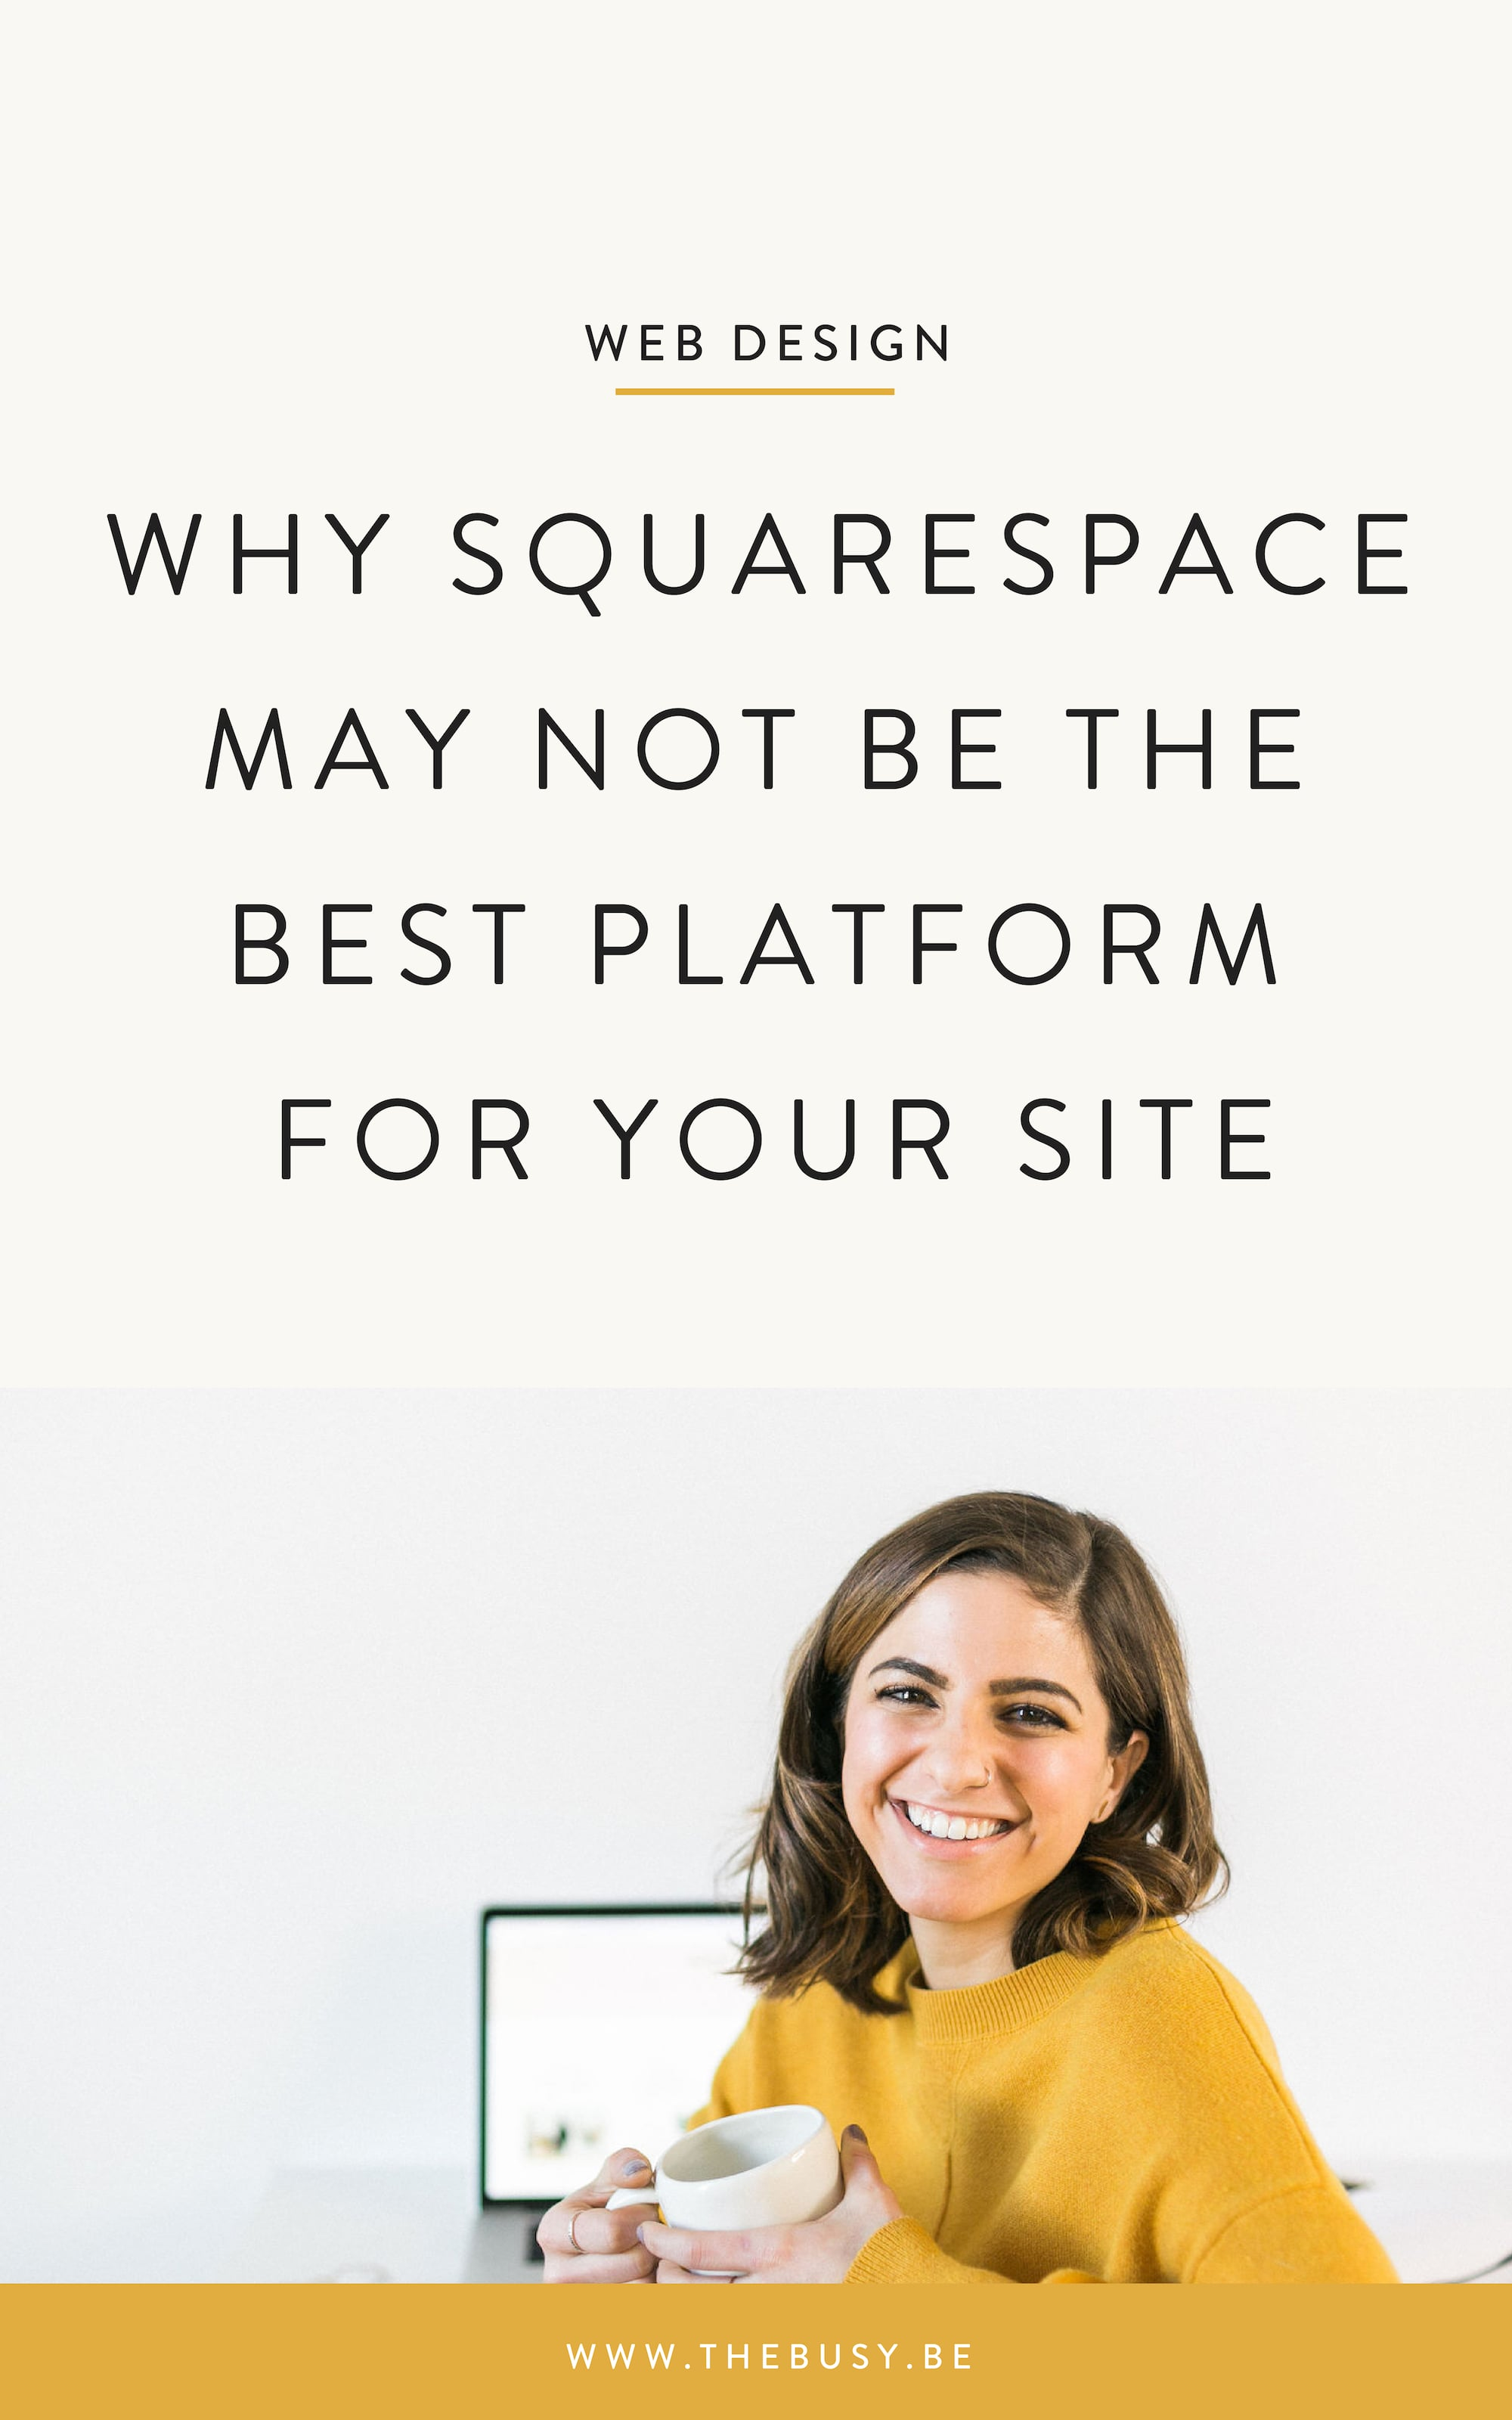 Why Squarespace May Not Be The Best Platform For Your Site - The Busy Bee